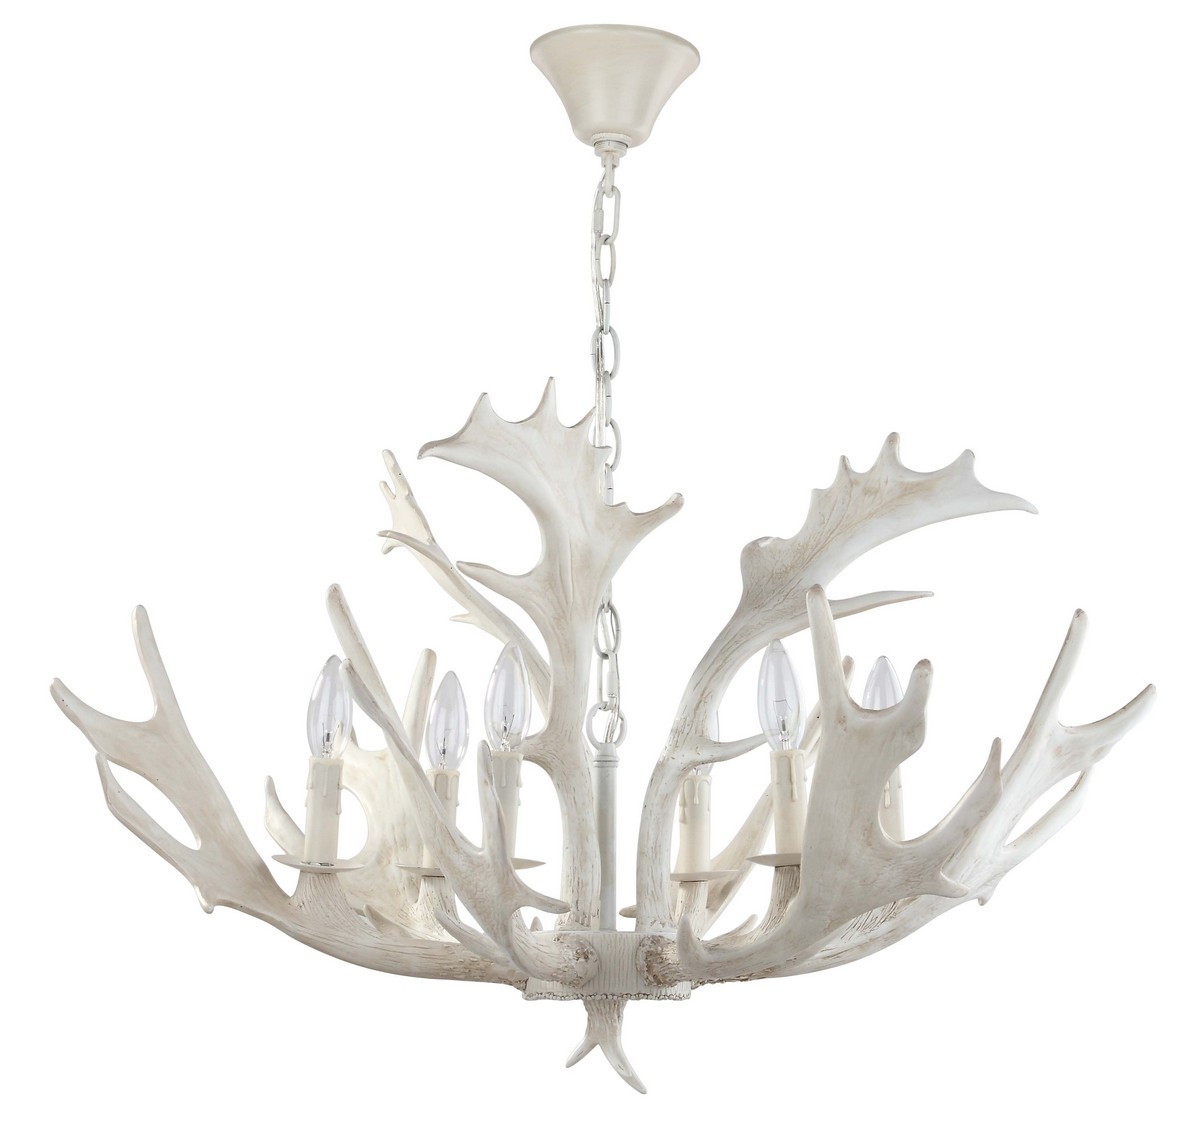 hbu p light chandelier of crystal chrome chandeliers home collection pictures decorators